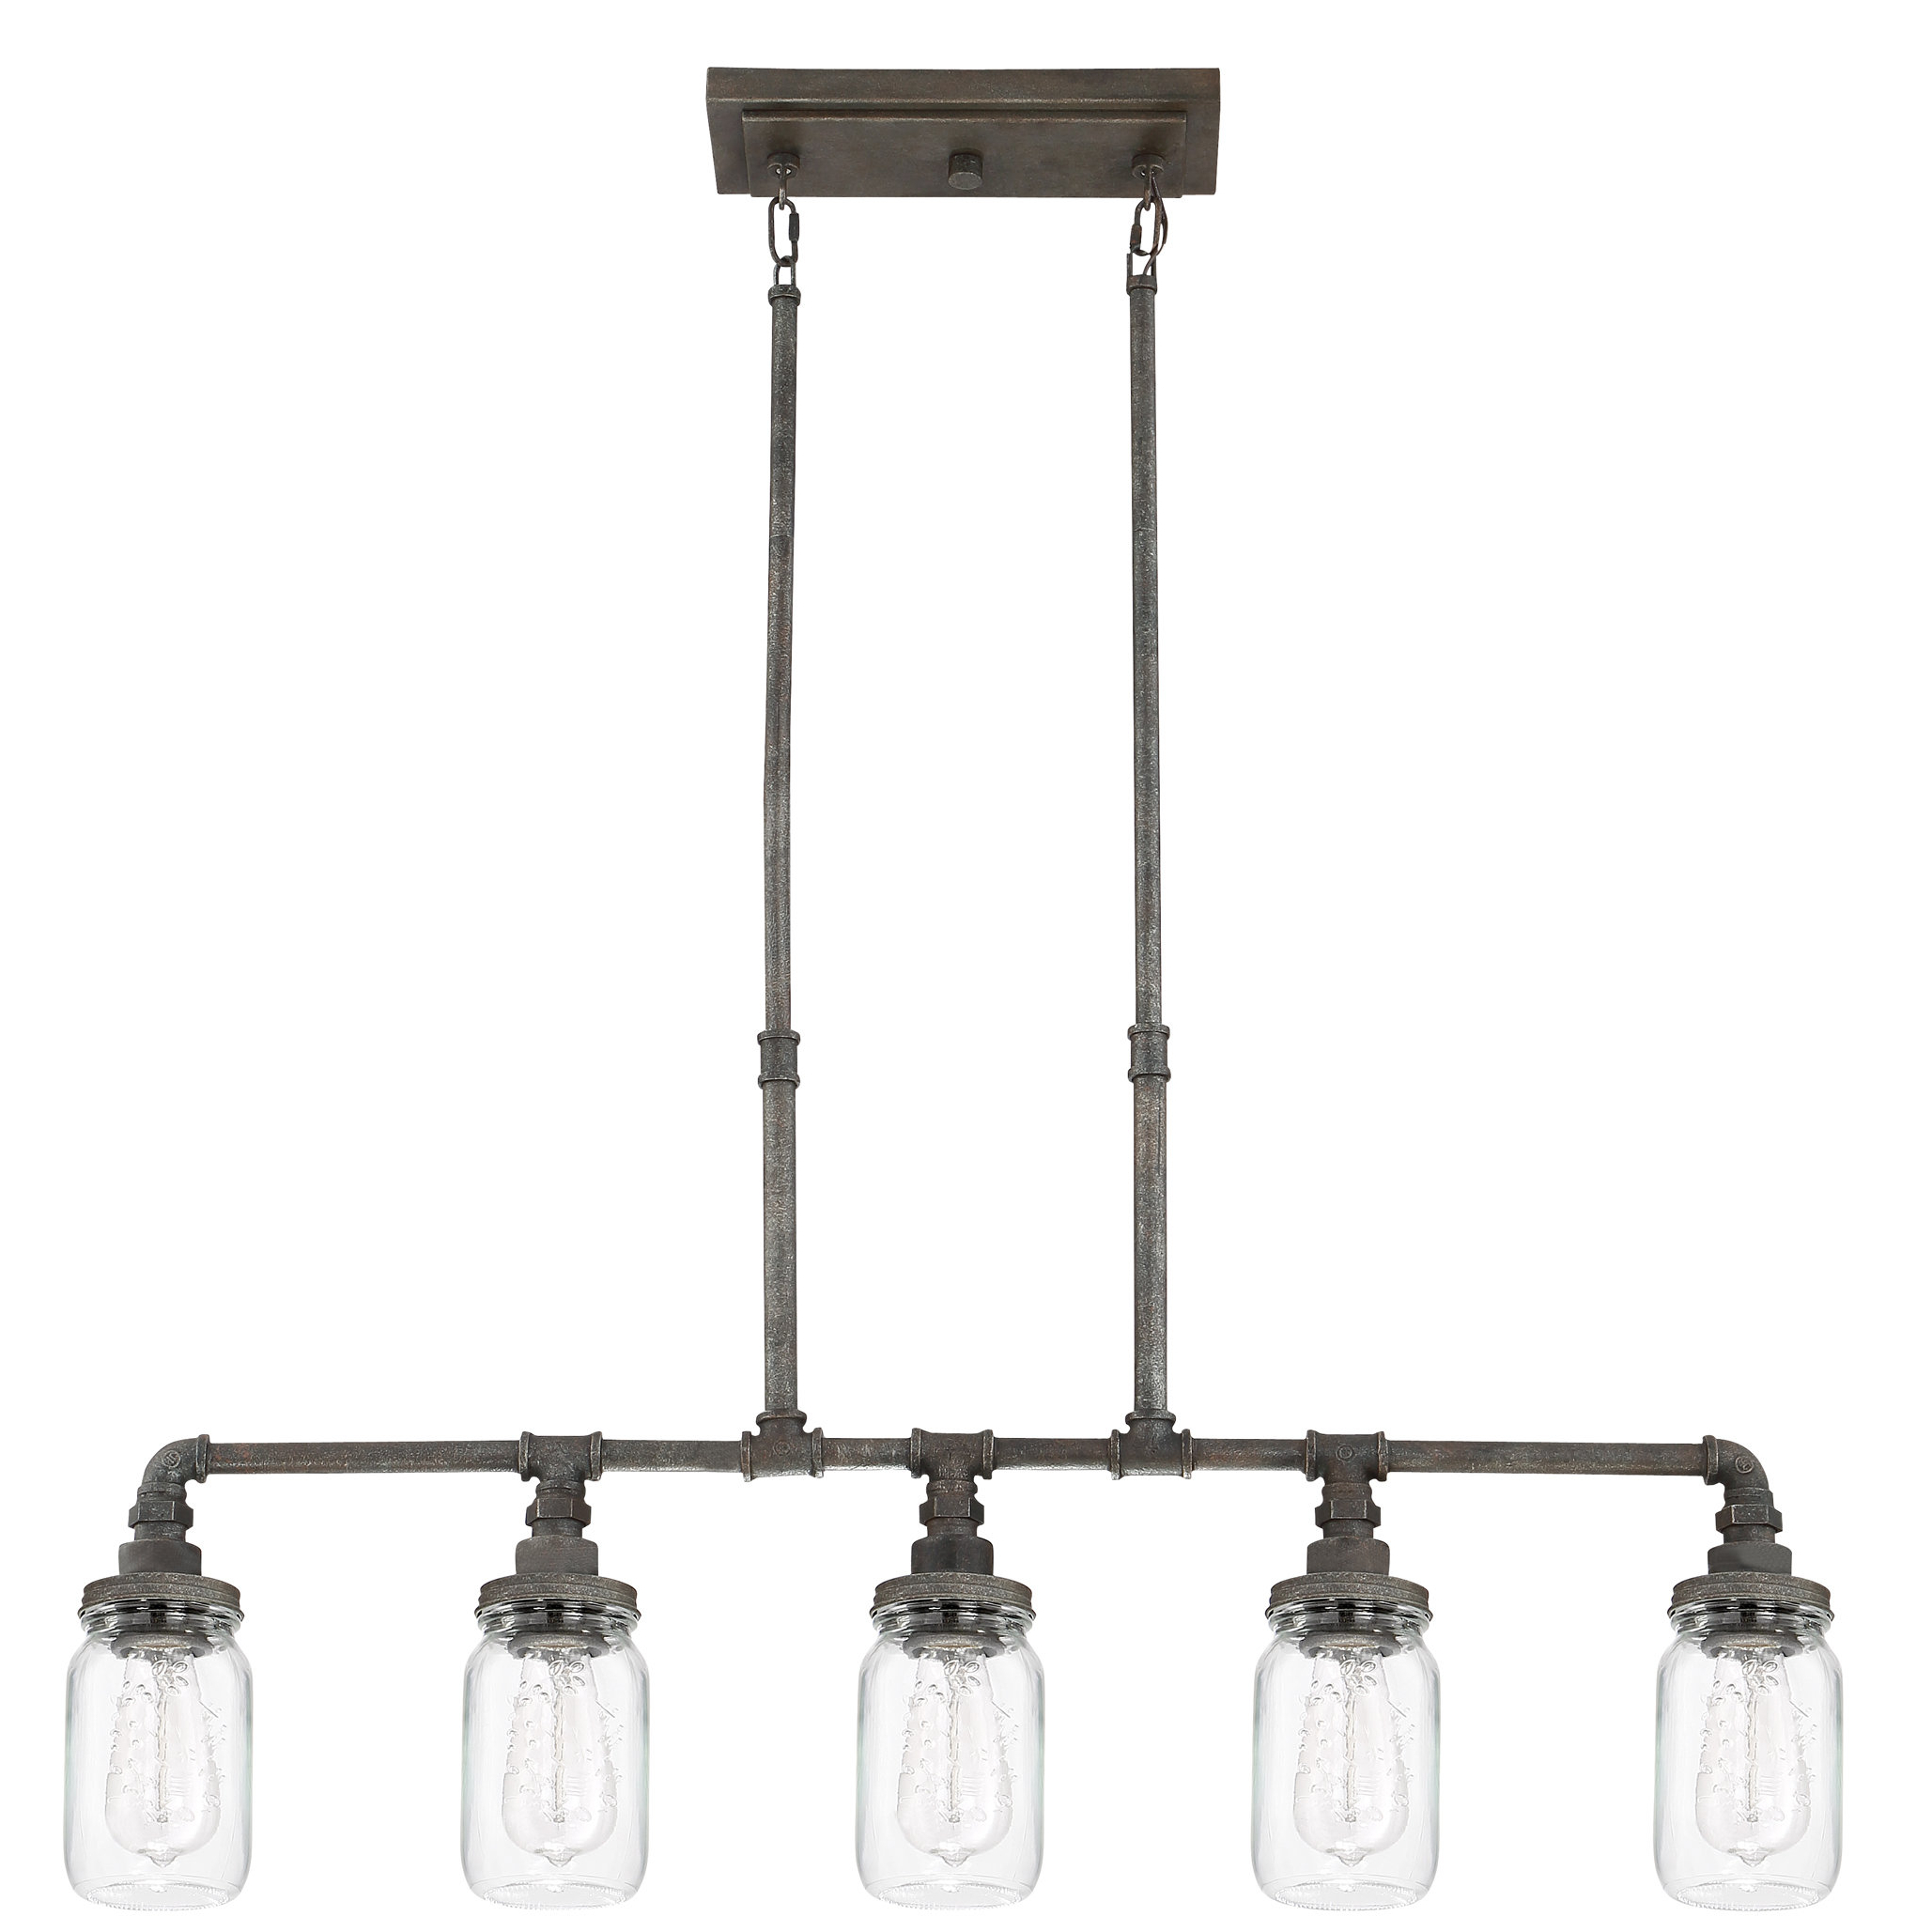 Jefferson 4 Light Kitchen Island Linear Pendants With Famous Brys Rustic Black 5 Light Kitchen Island Pendant (View 10 of 25)